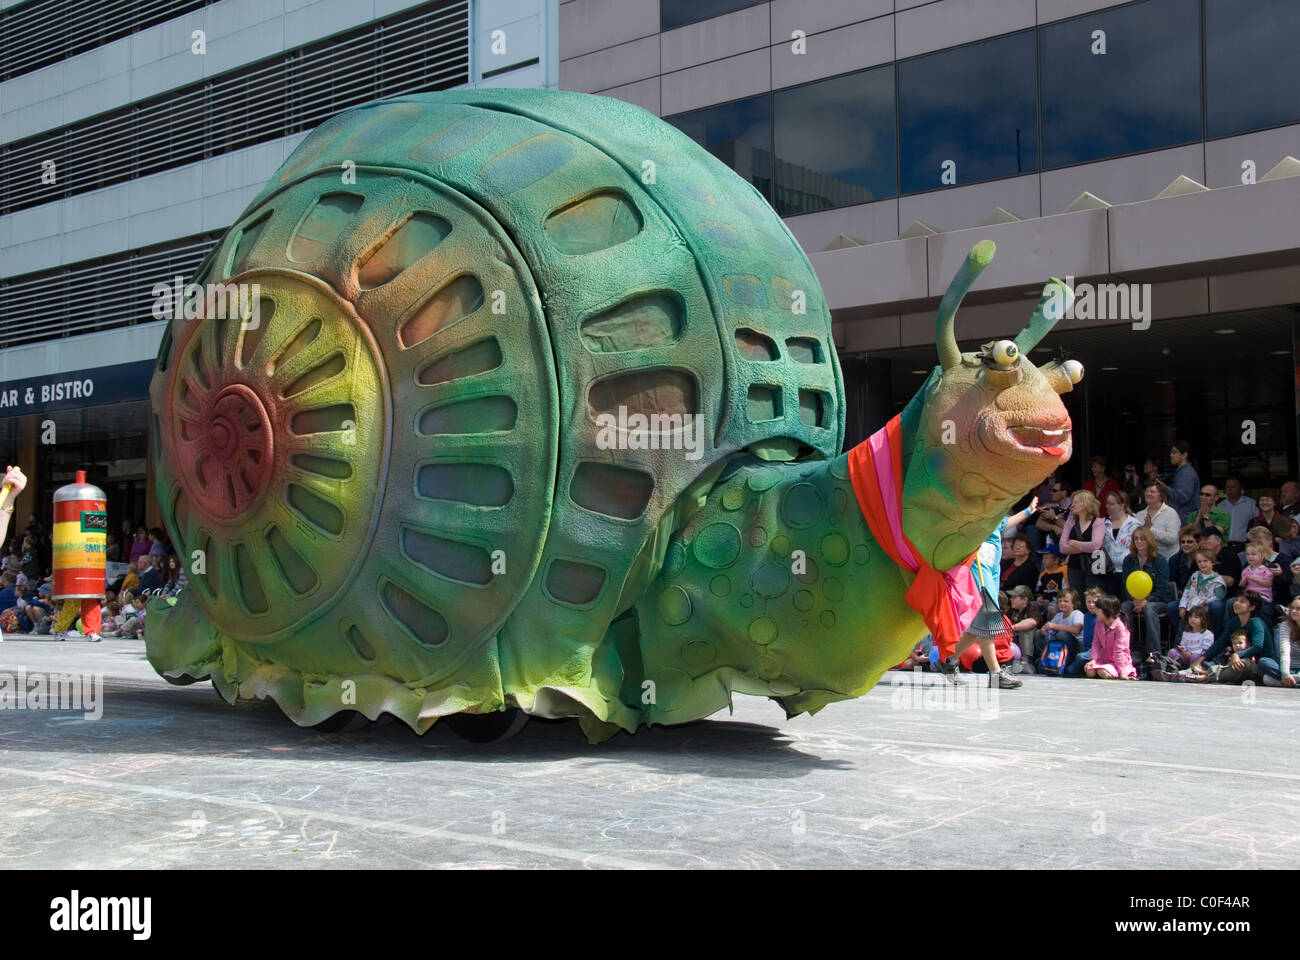 Large snail float in the Credit Union Christmas Pageant through the streets of Adelaide, South Australia. - Stock Image